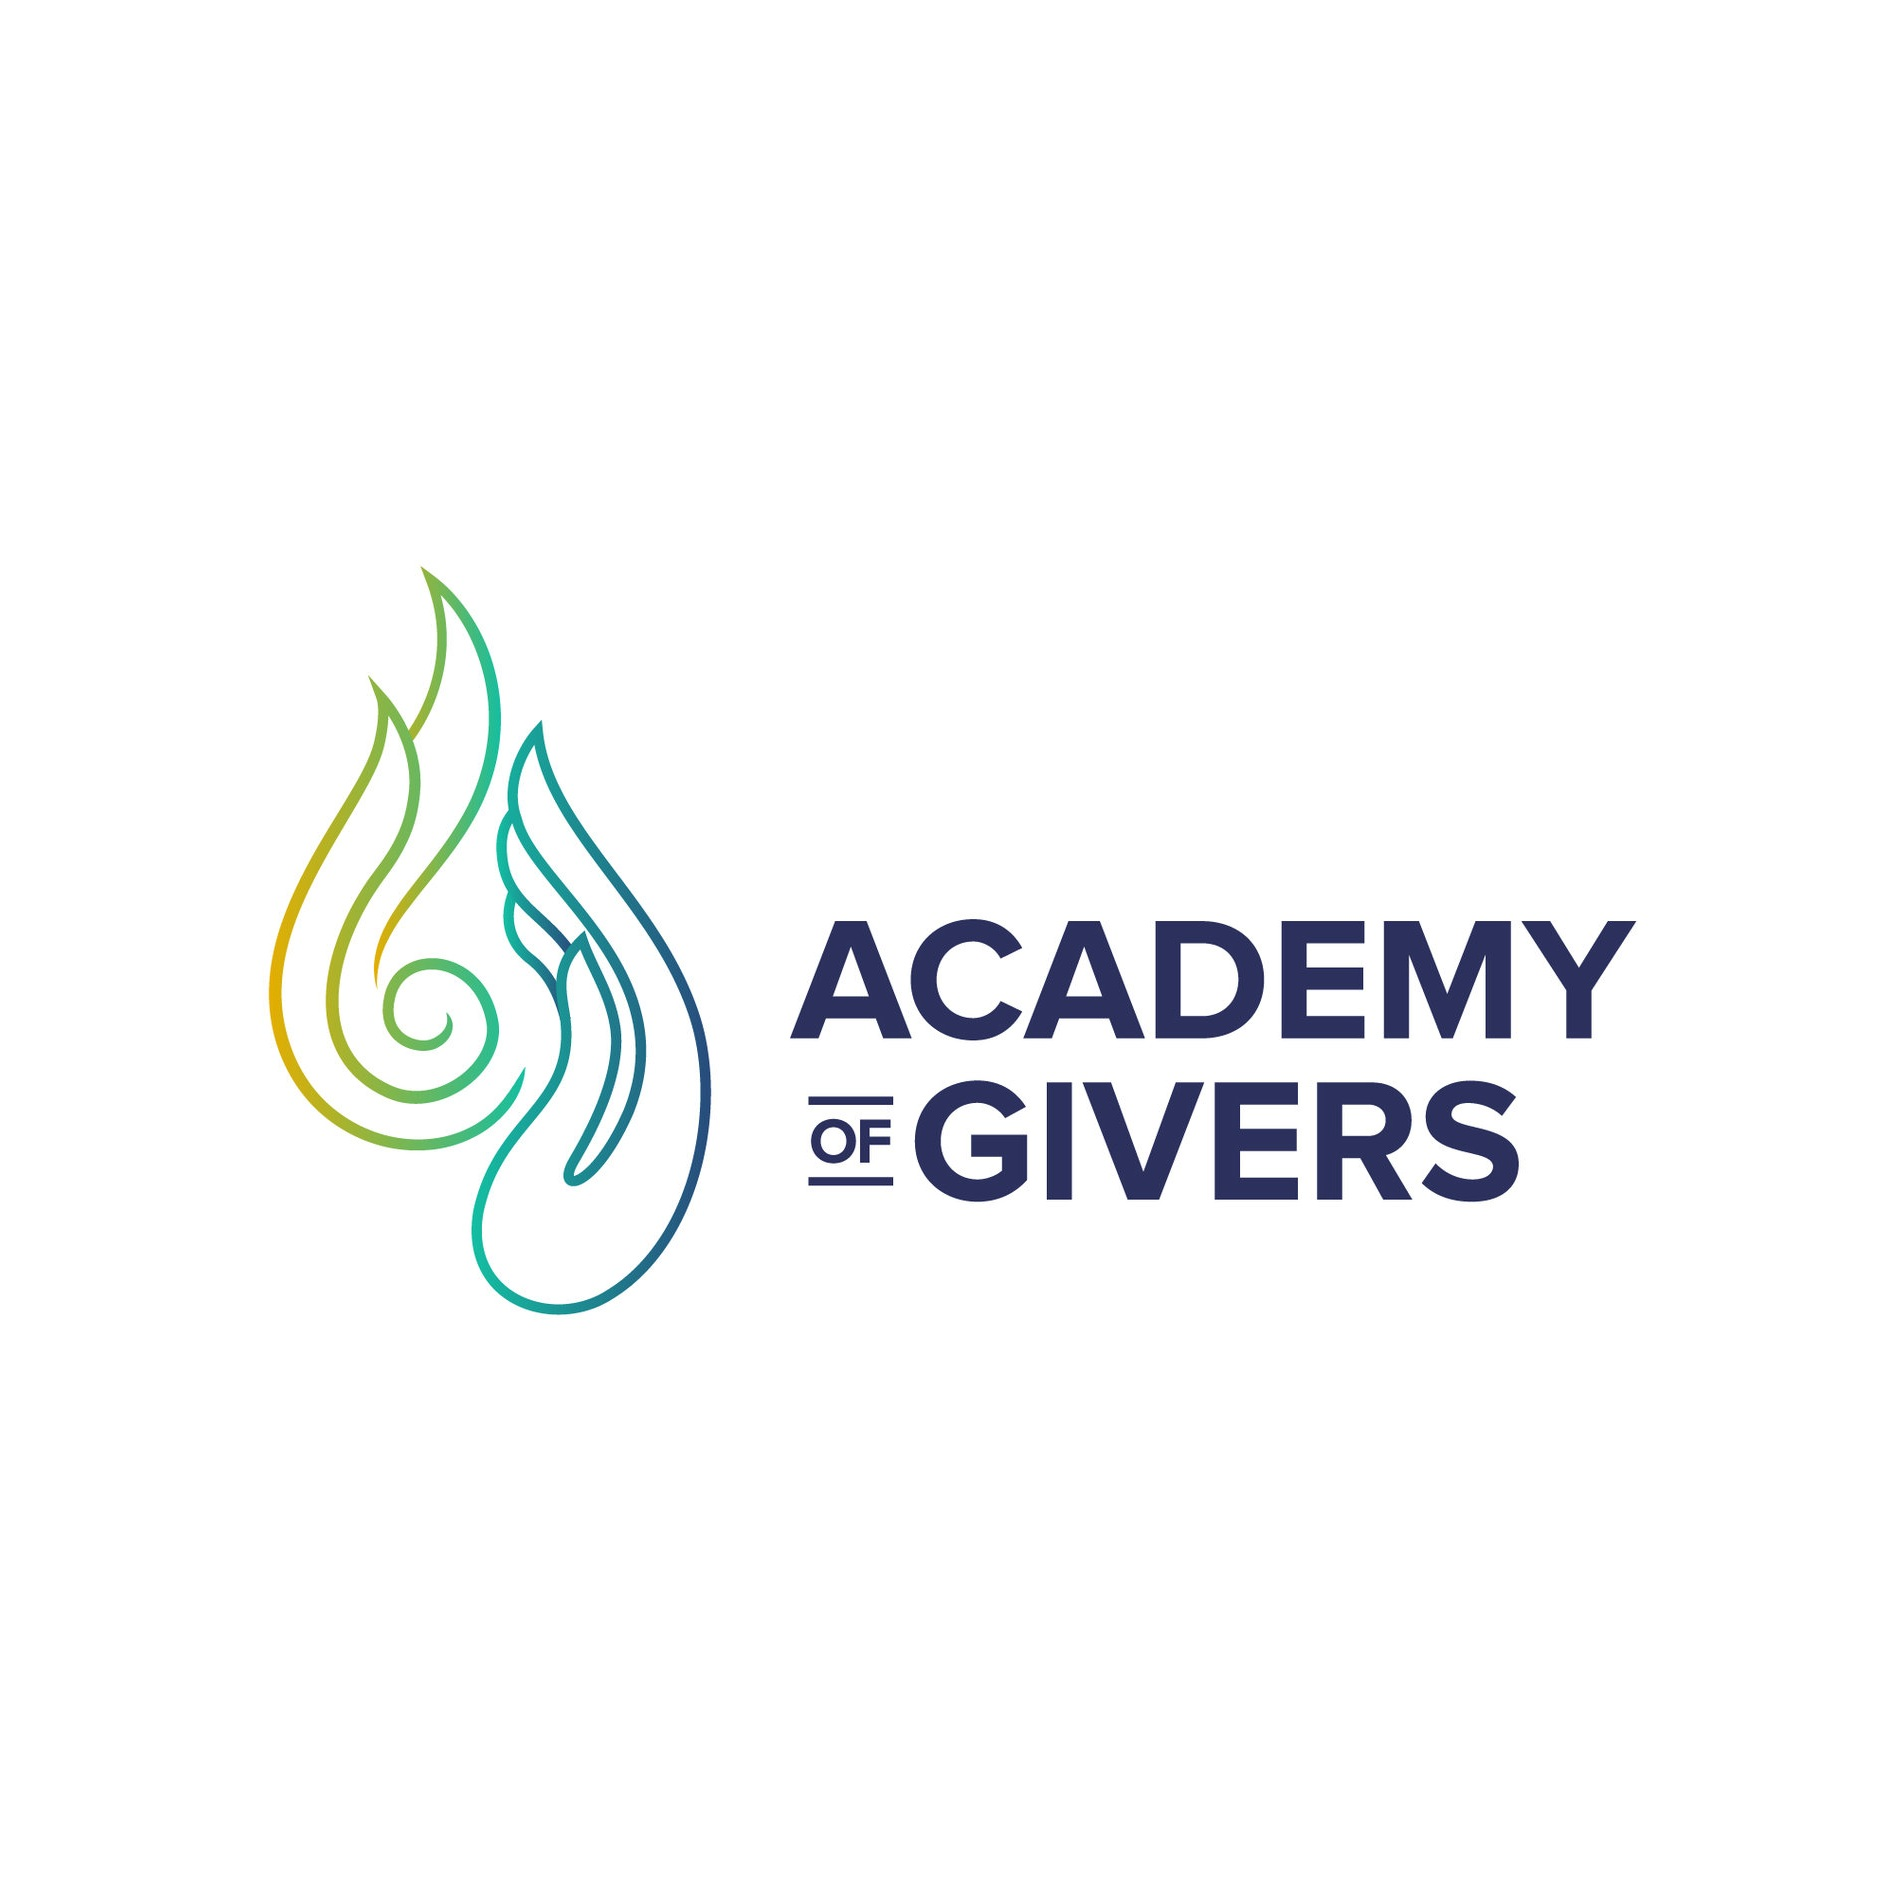 Academy of Givers - The Academy of Givers is the first of its kind in Malta, dedicated to making a real difference by providing a platform for like-minded people to come together, to learn and be inspired. The Academy of Givers aims to improve philanthropic and CSR efforts in Malta, by changing mindsets and the giving environment through legislative change.